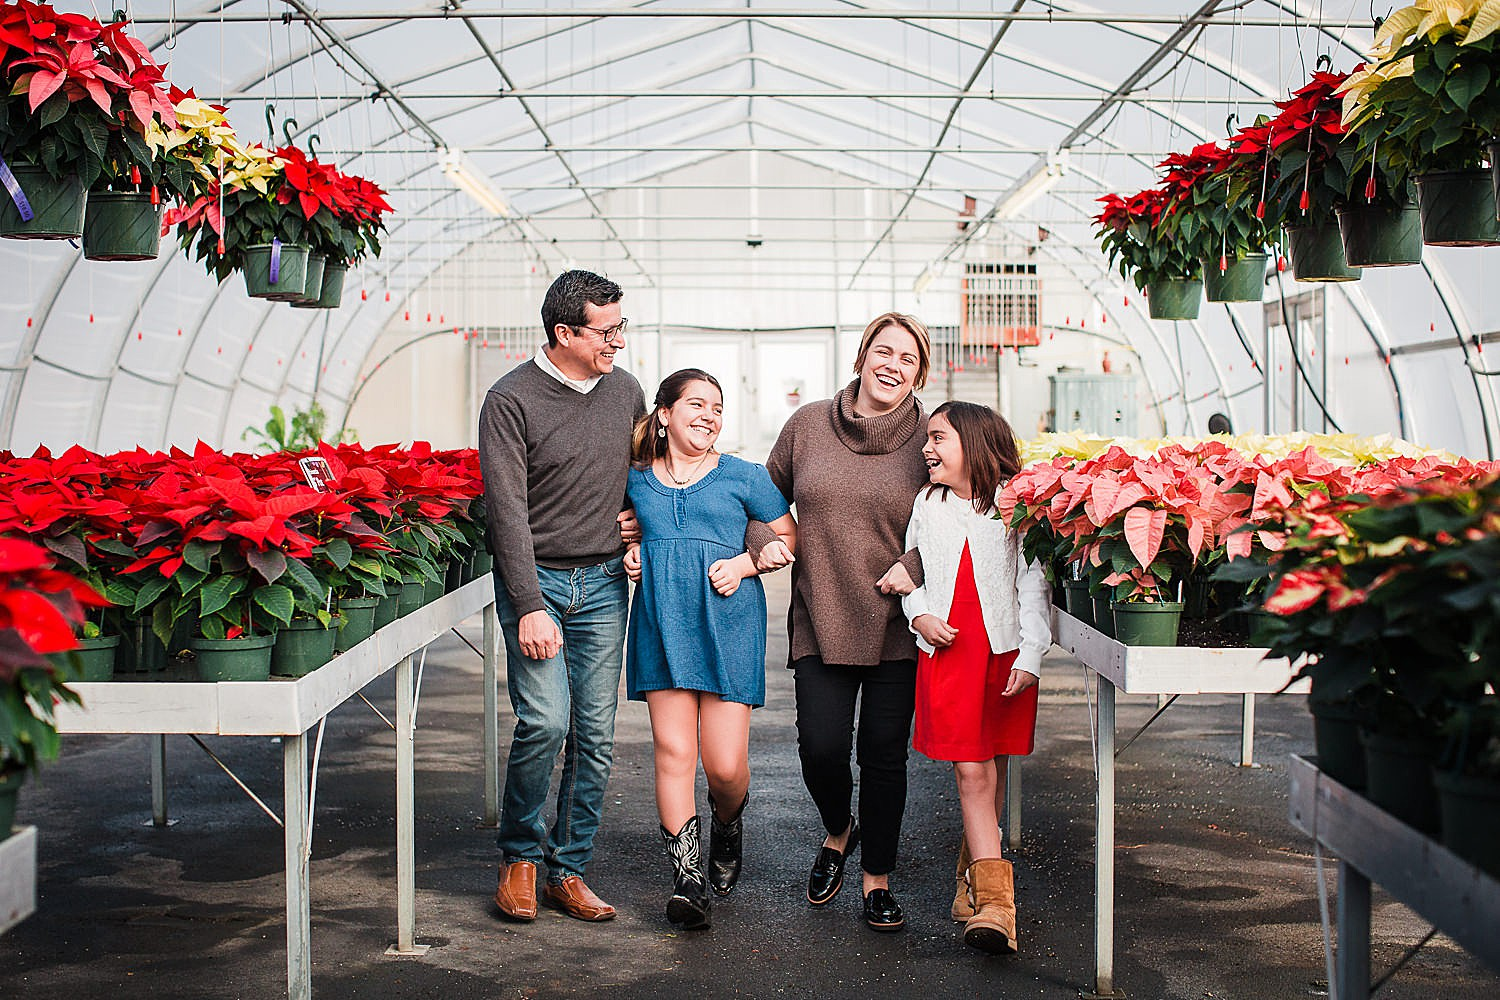 Photo of a family of four walking through a greenhouse full of poinsettias at Christmas time.